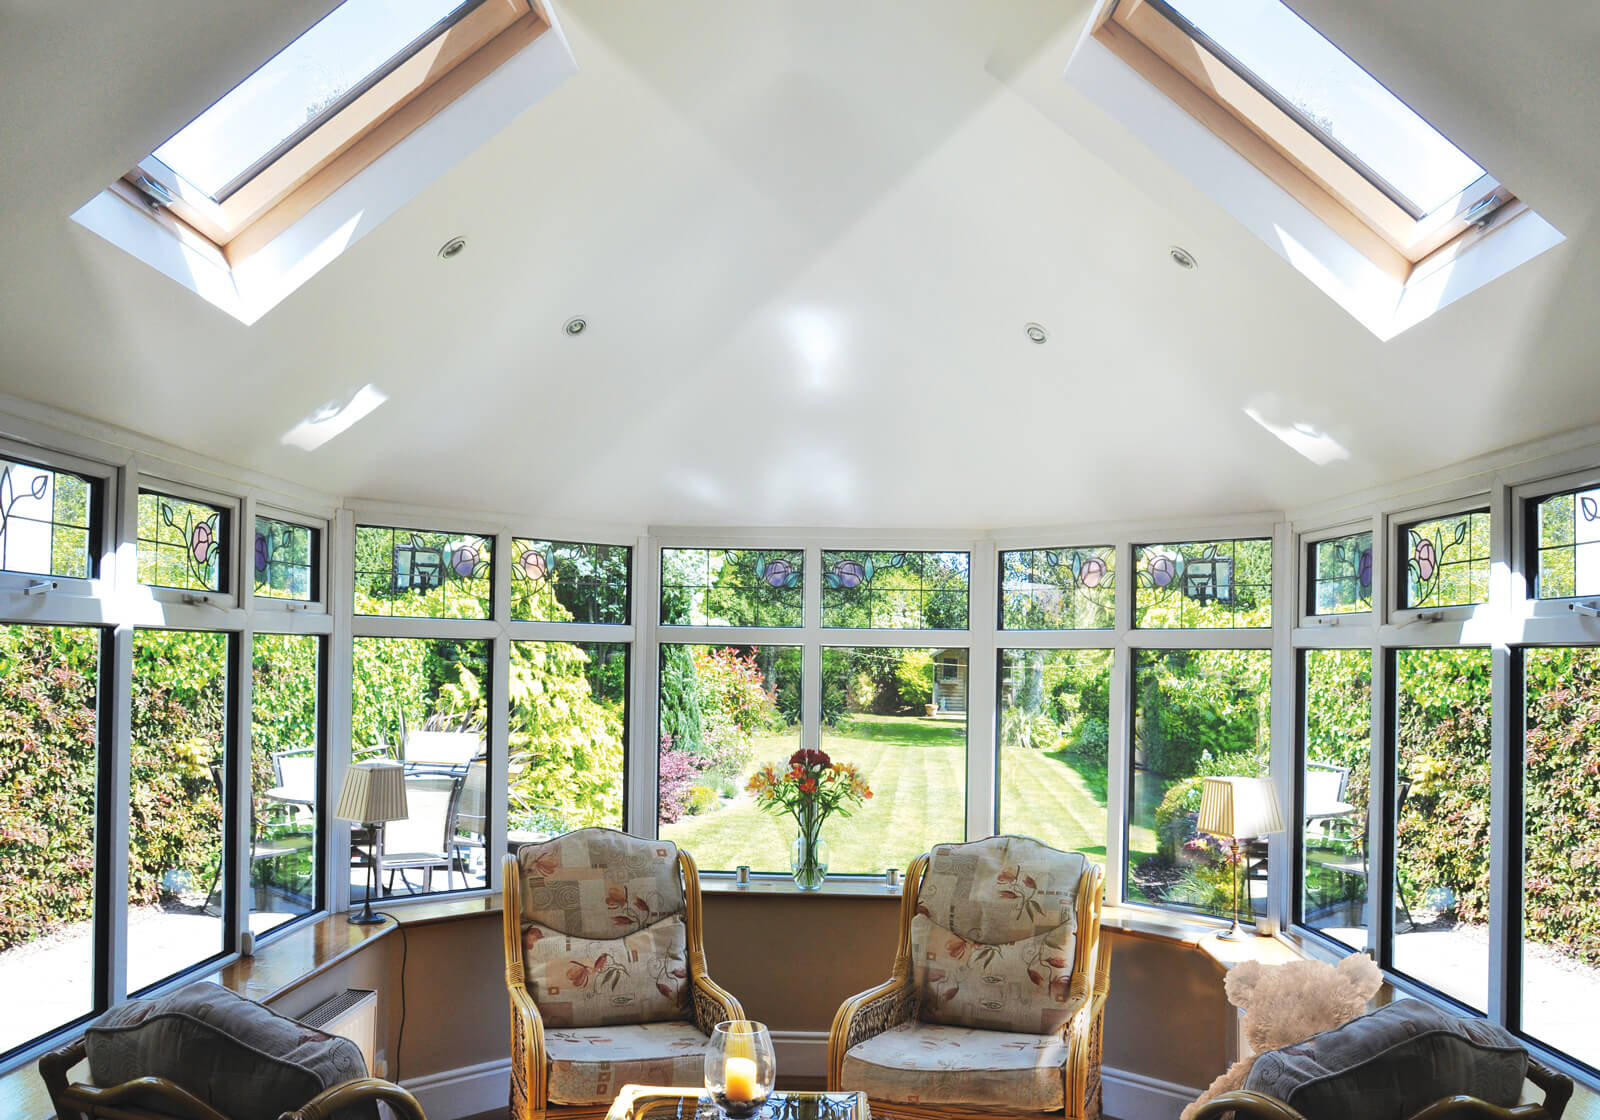 Conservatory Guardian Roofing At Etc Windows Doors And Conservatories Based In Evesham Worcestershire